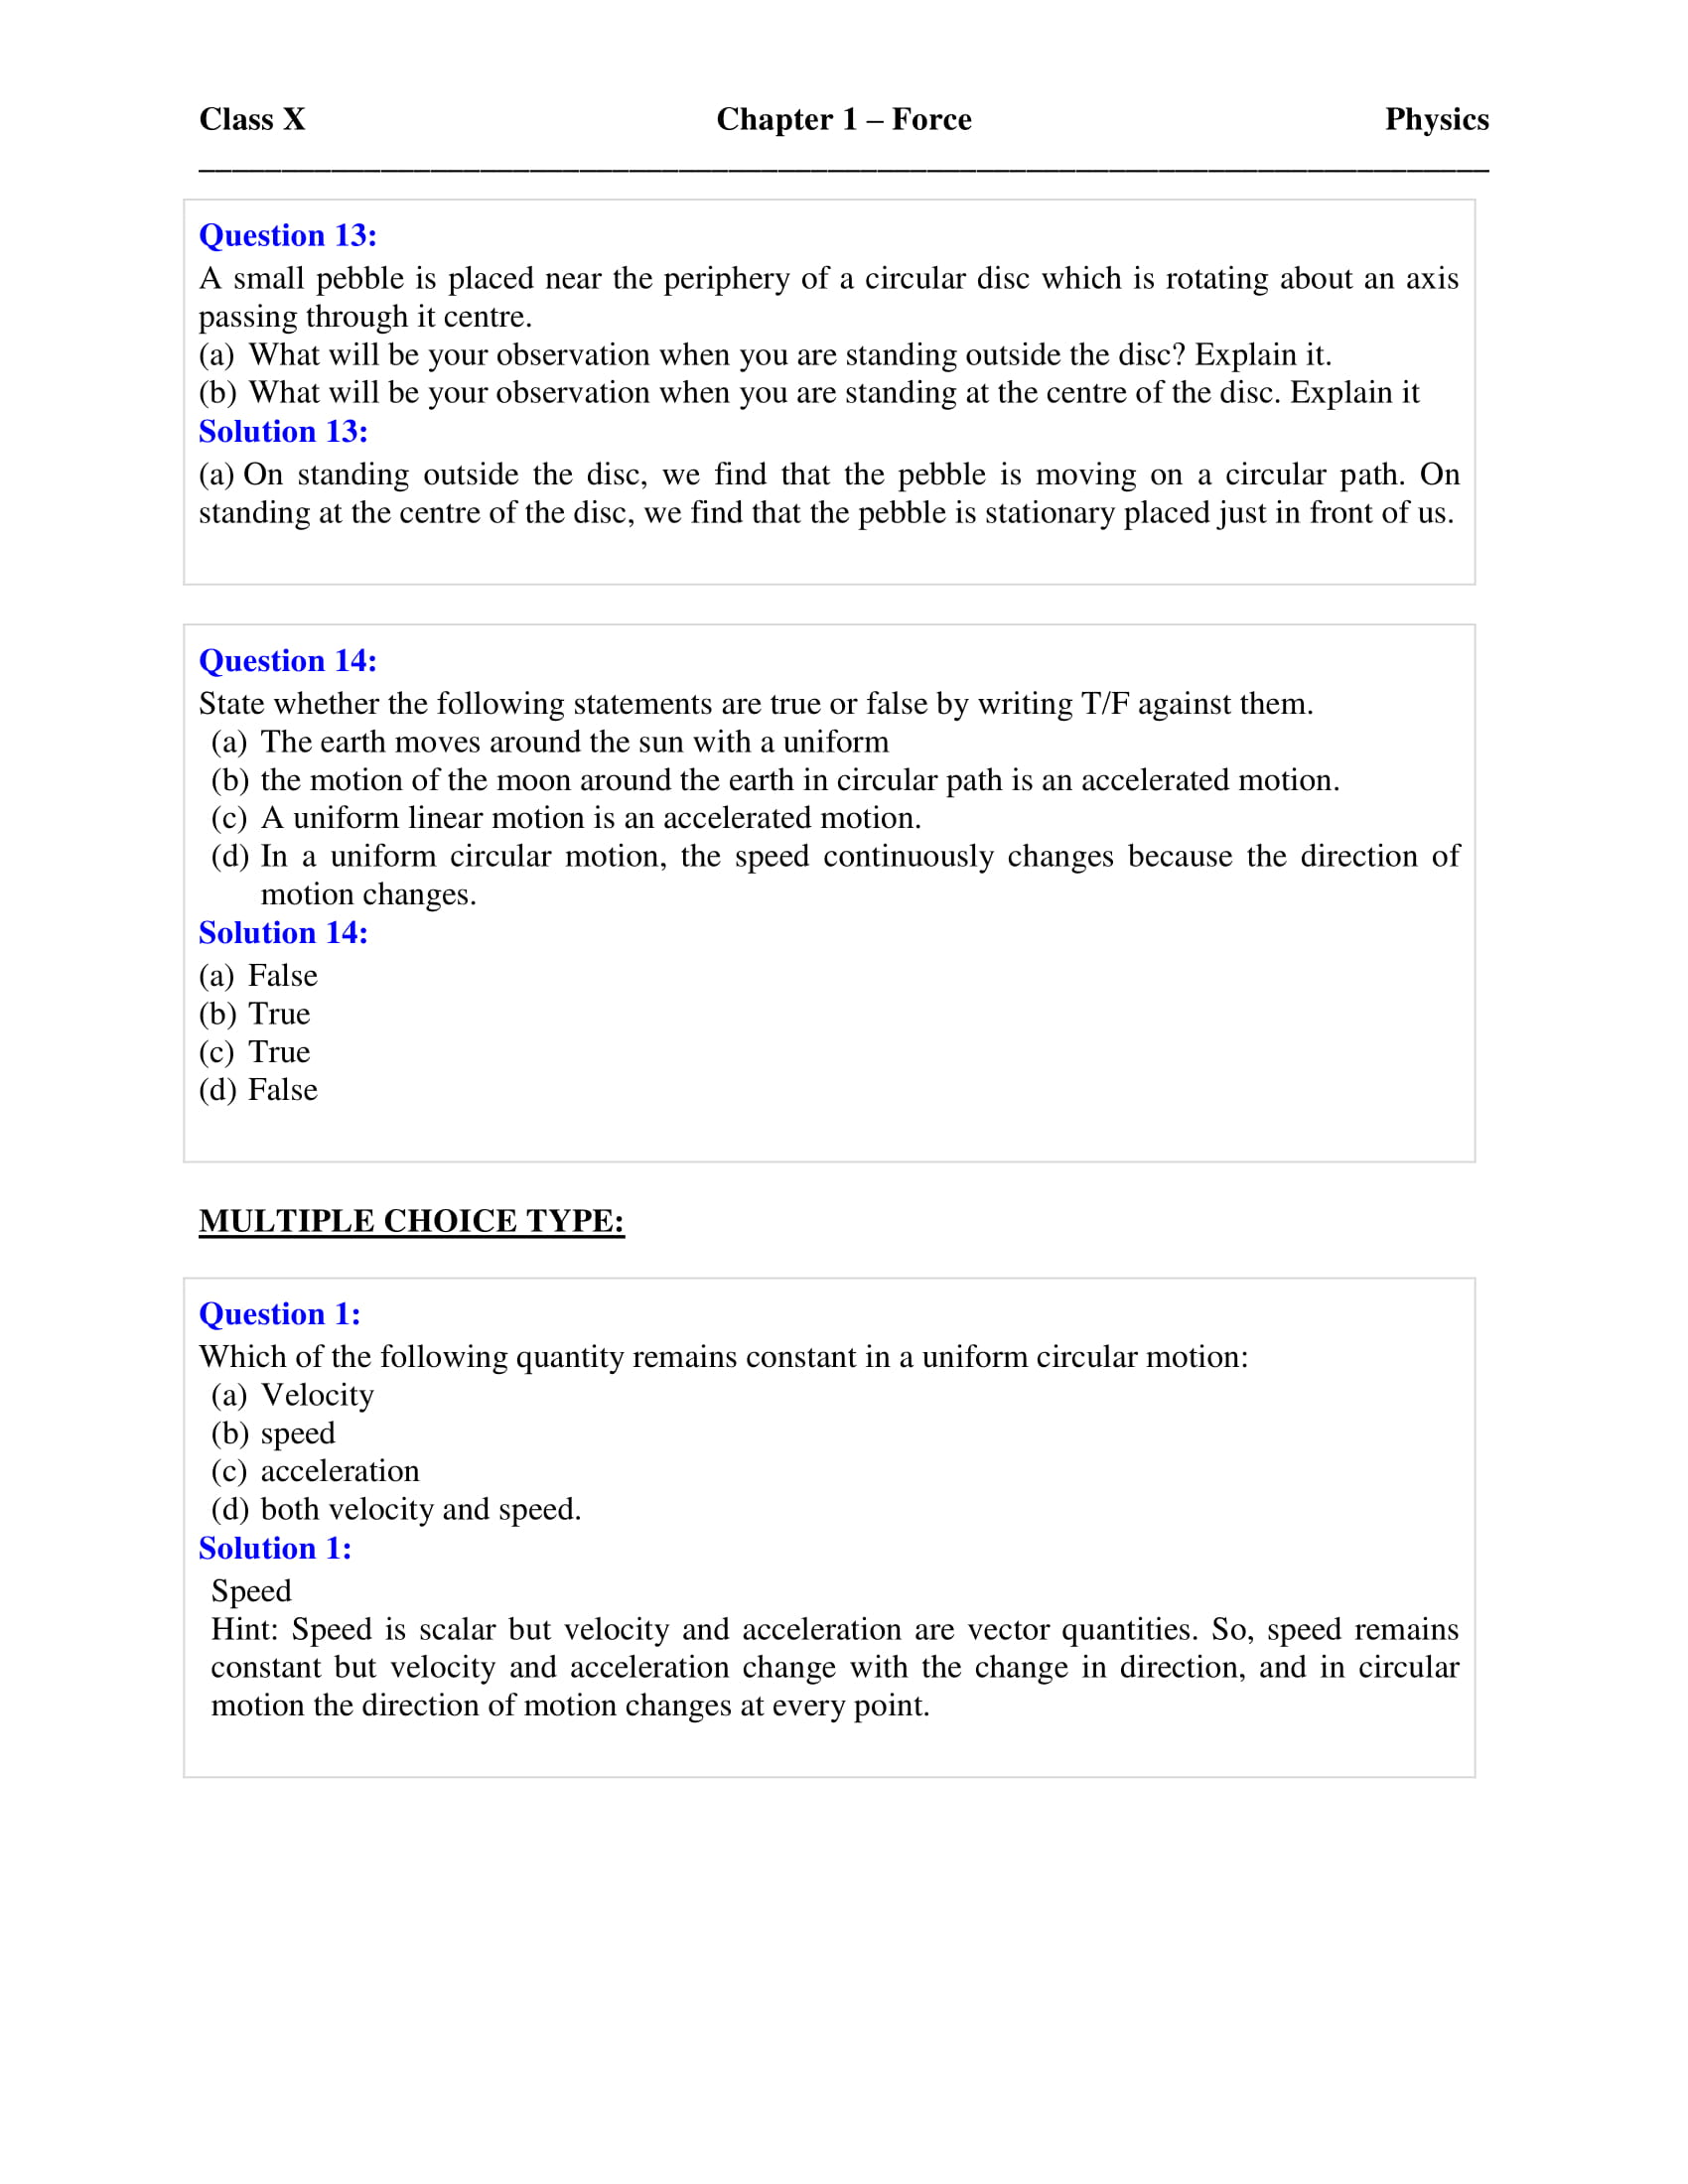 icse-selina-physics-solutions-class-10-chapter-1-force-38